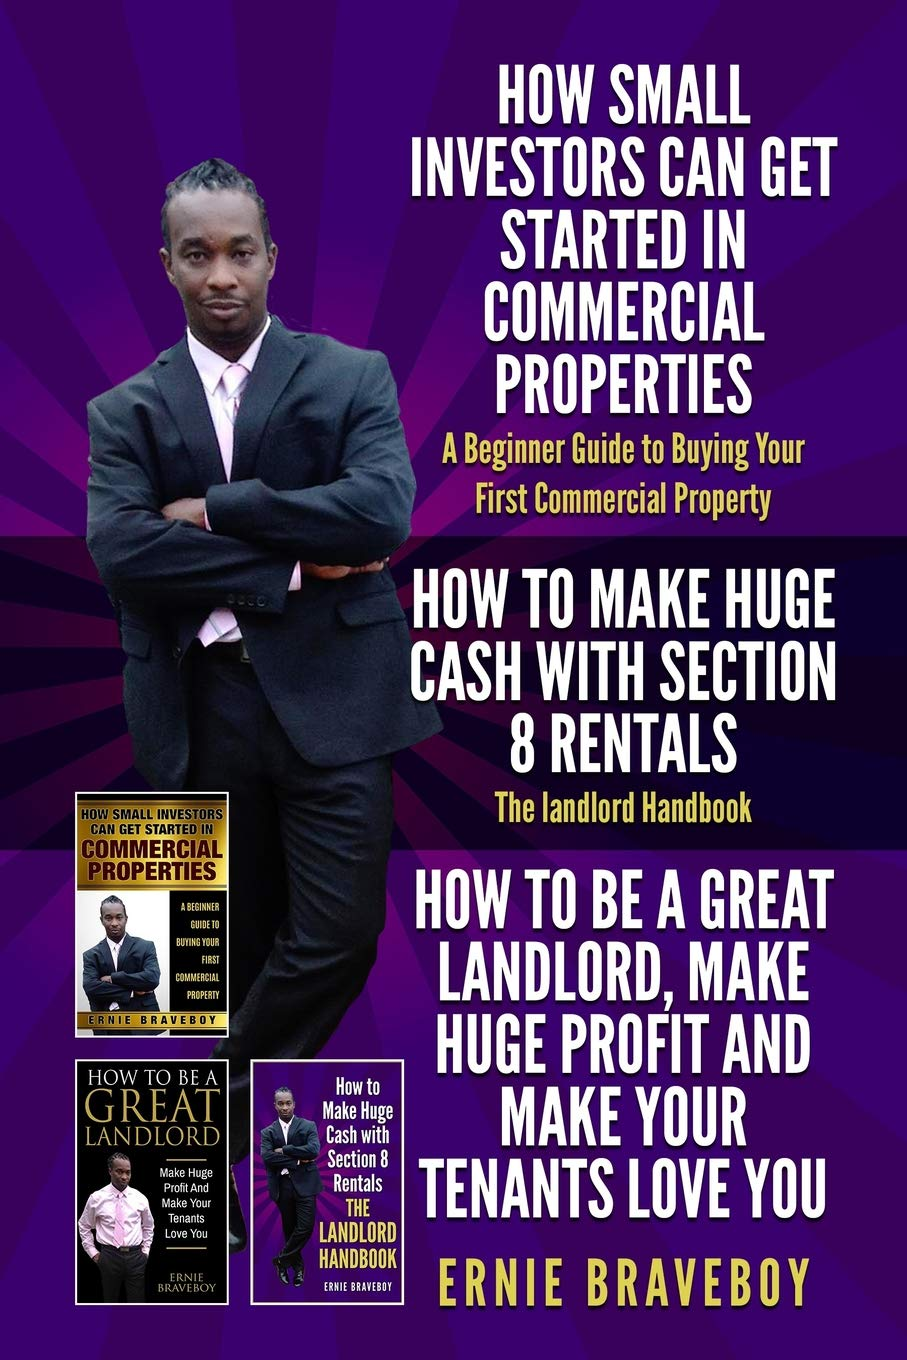 Download HOW SMALL INVESTORS CAN GET STARTED IN COMMERCIAL PROPERTIES A Beginner Guide to Buying Your First Commercial Property HOW TO MAKE HUGE CASH WITH SECTION 8 RENTALS The landlord Handbook pdf